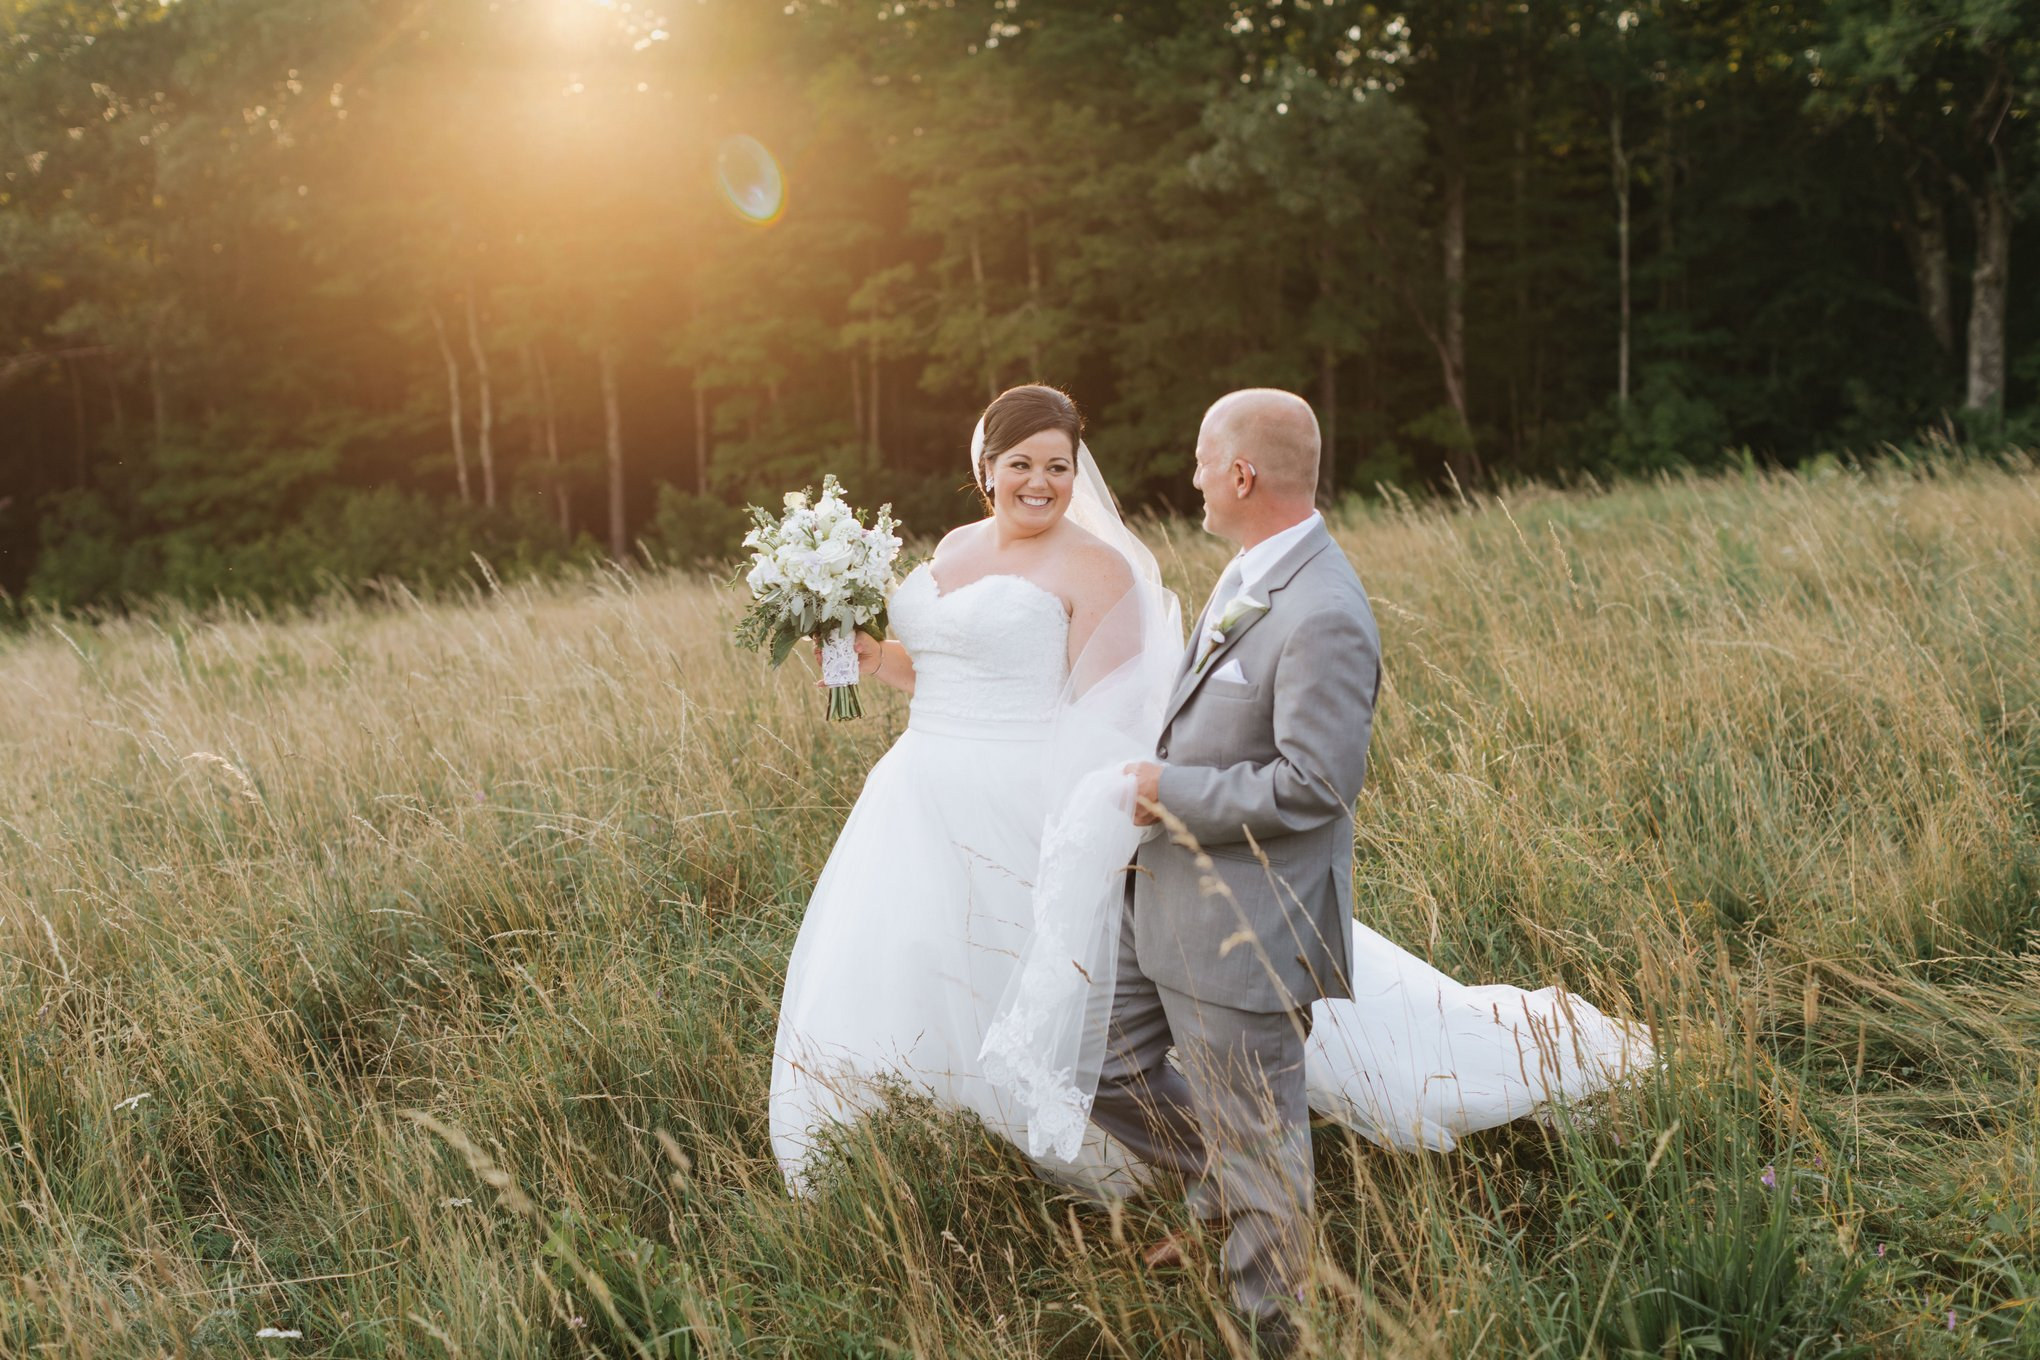 Harrington_Farm_Wedding_Photographer-35.jpg